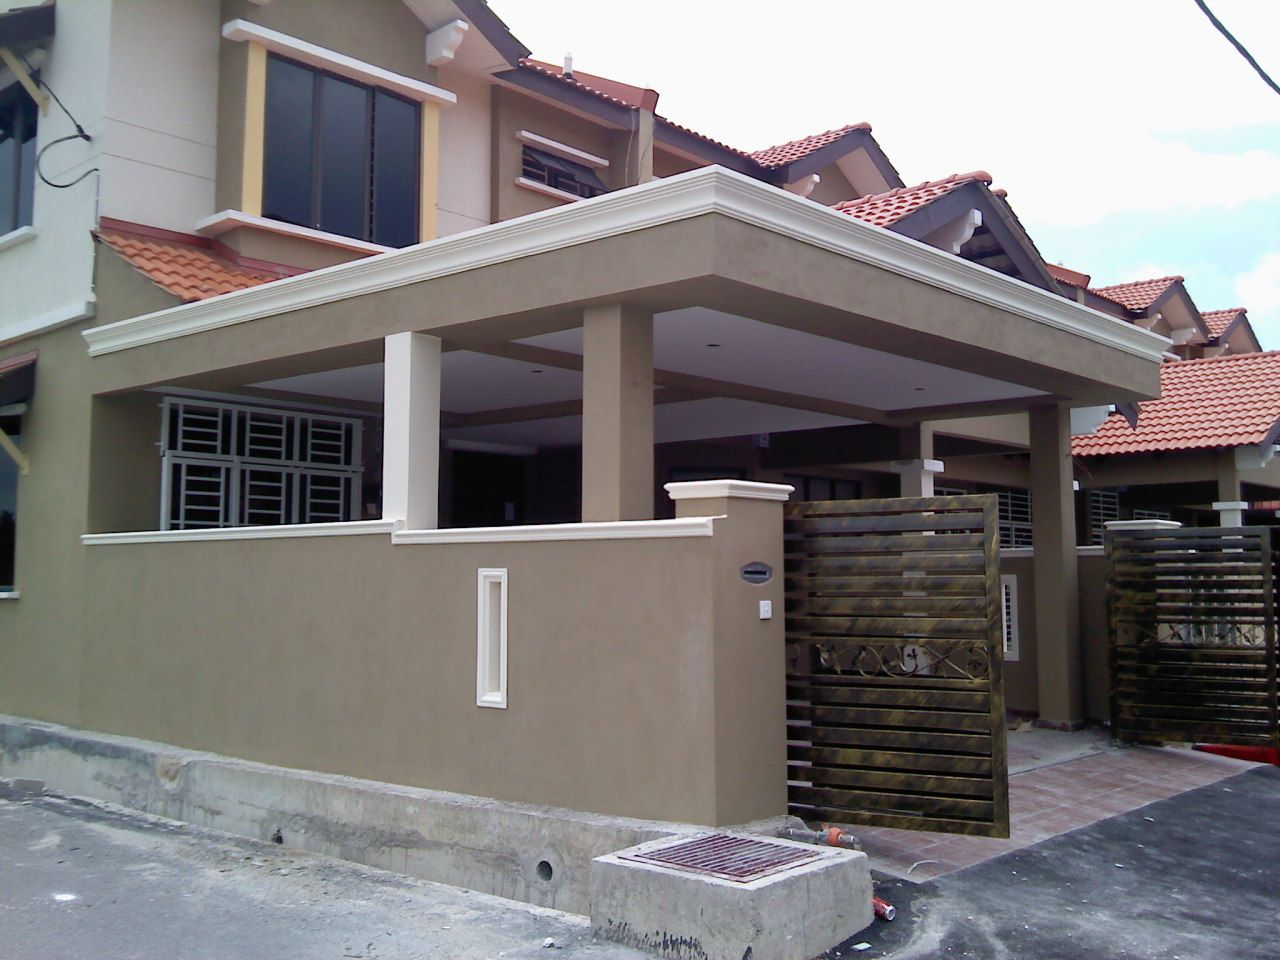 Kitchen U0026 Car Porch Extension Car Porch Extend + Living Hall Extend + 2nd  Floor Extend + Auto Gate Kitchen Extension + Pegola Awn..